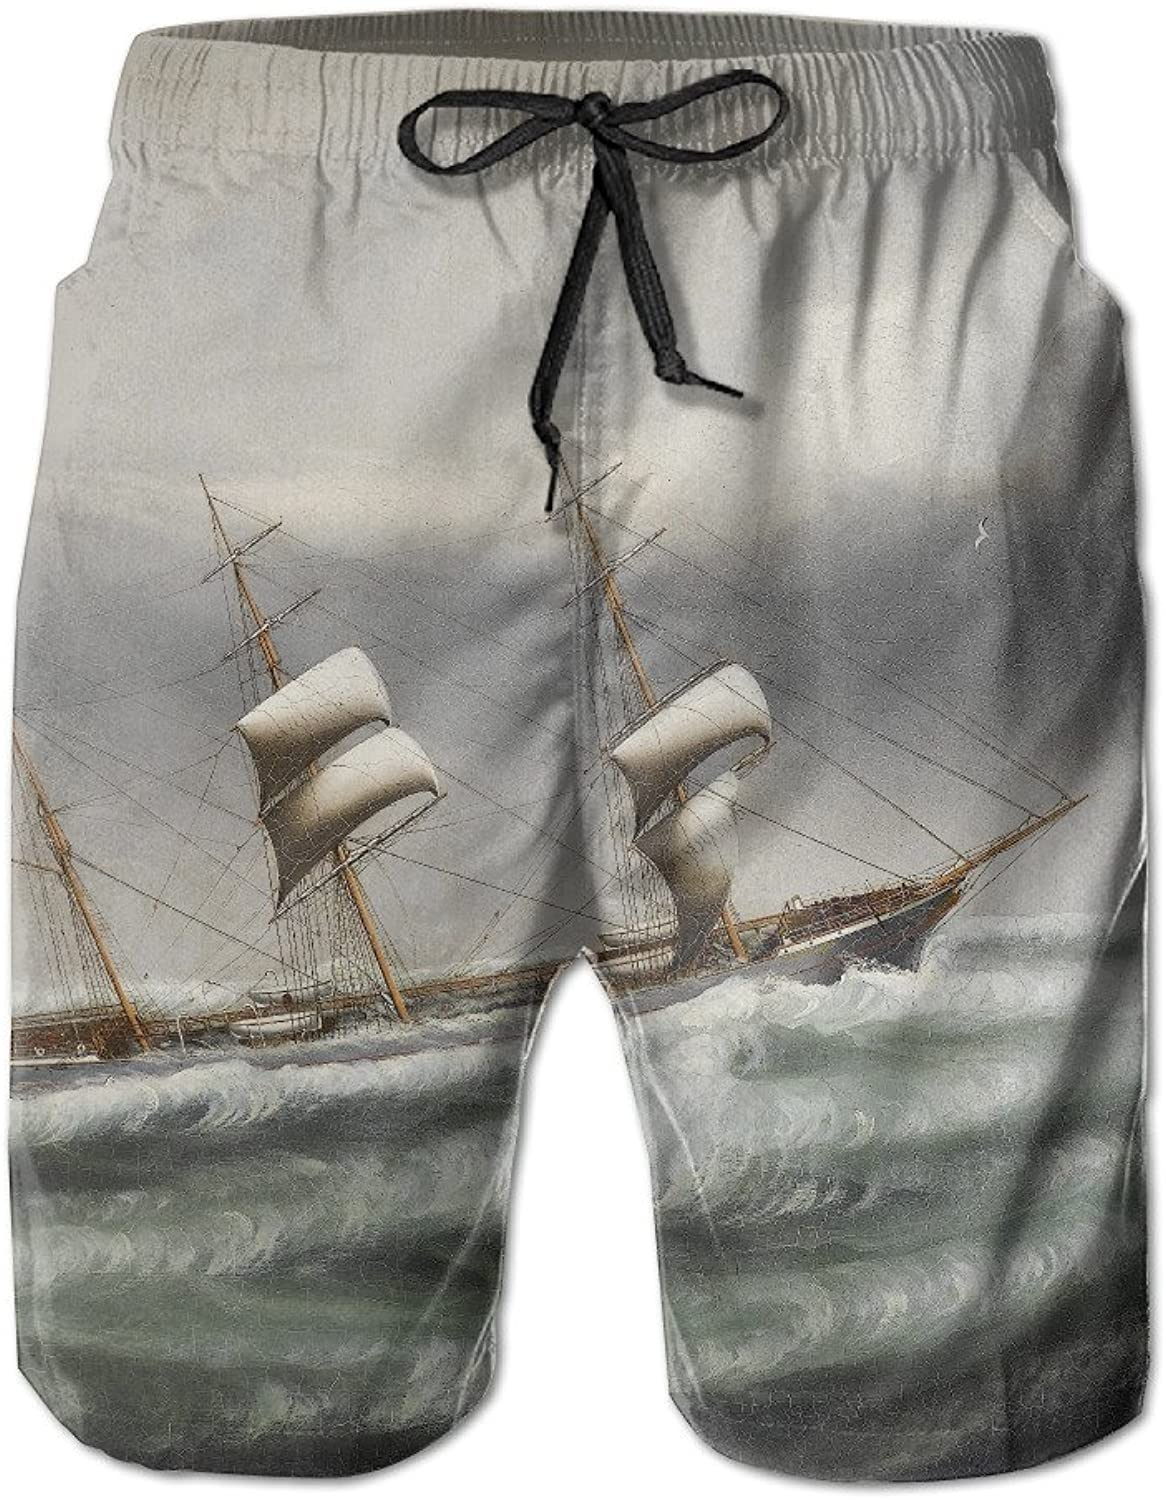 The Sailboat In Stormy Waters Summer Mens Quick-drying Surf Trunks Beach Shorts